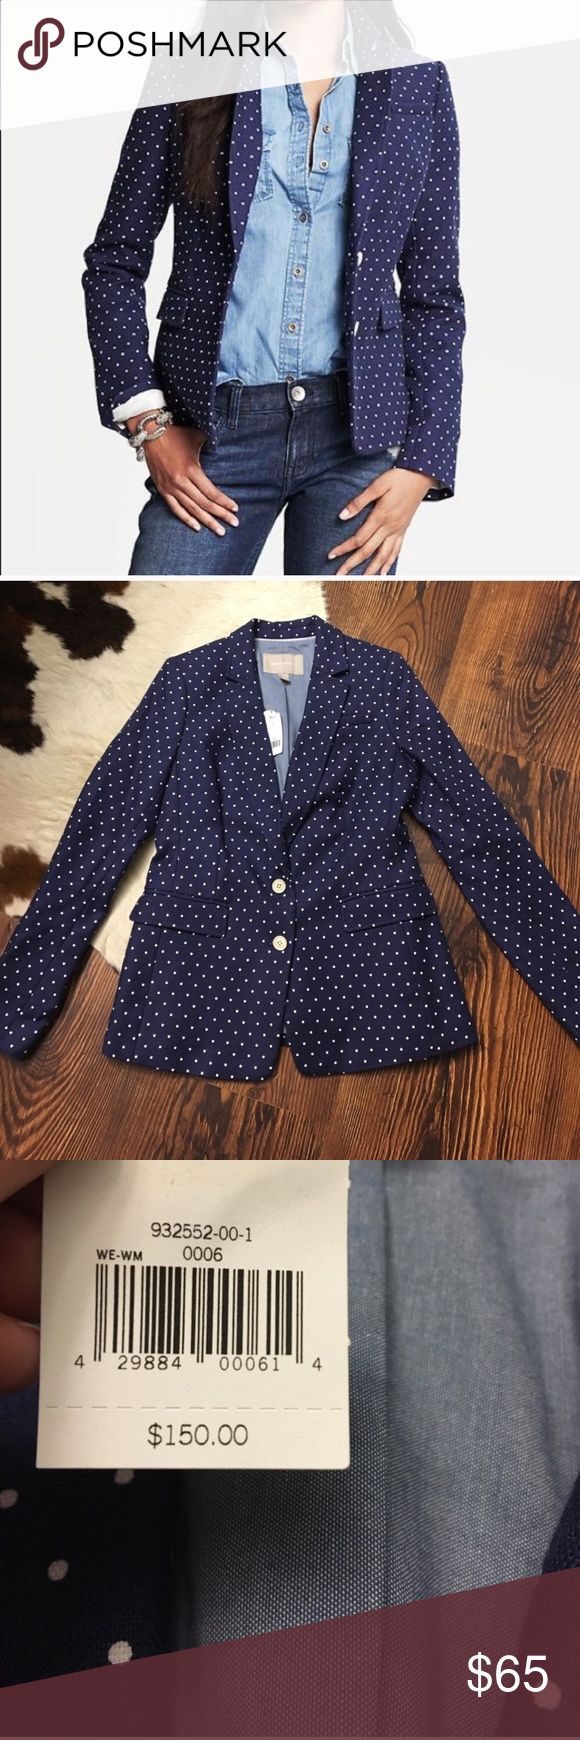 Banana Republic Polka Dot Navy Blazer Night Sky New with tags. This is an adorable blazer! Armpit to armpit: 18 inches. Shoulder to hem: 26 inches. Sleeves from shoulder seam: 24 inches. Banana Republic Jackets & Coats Blazers